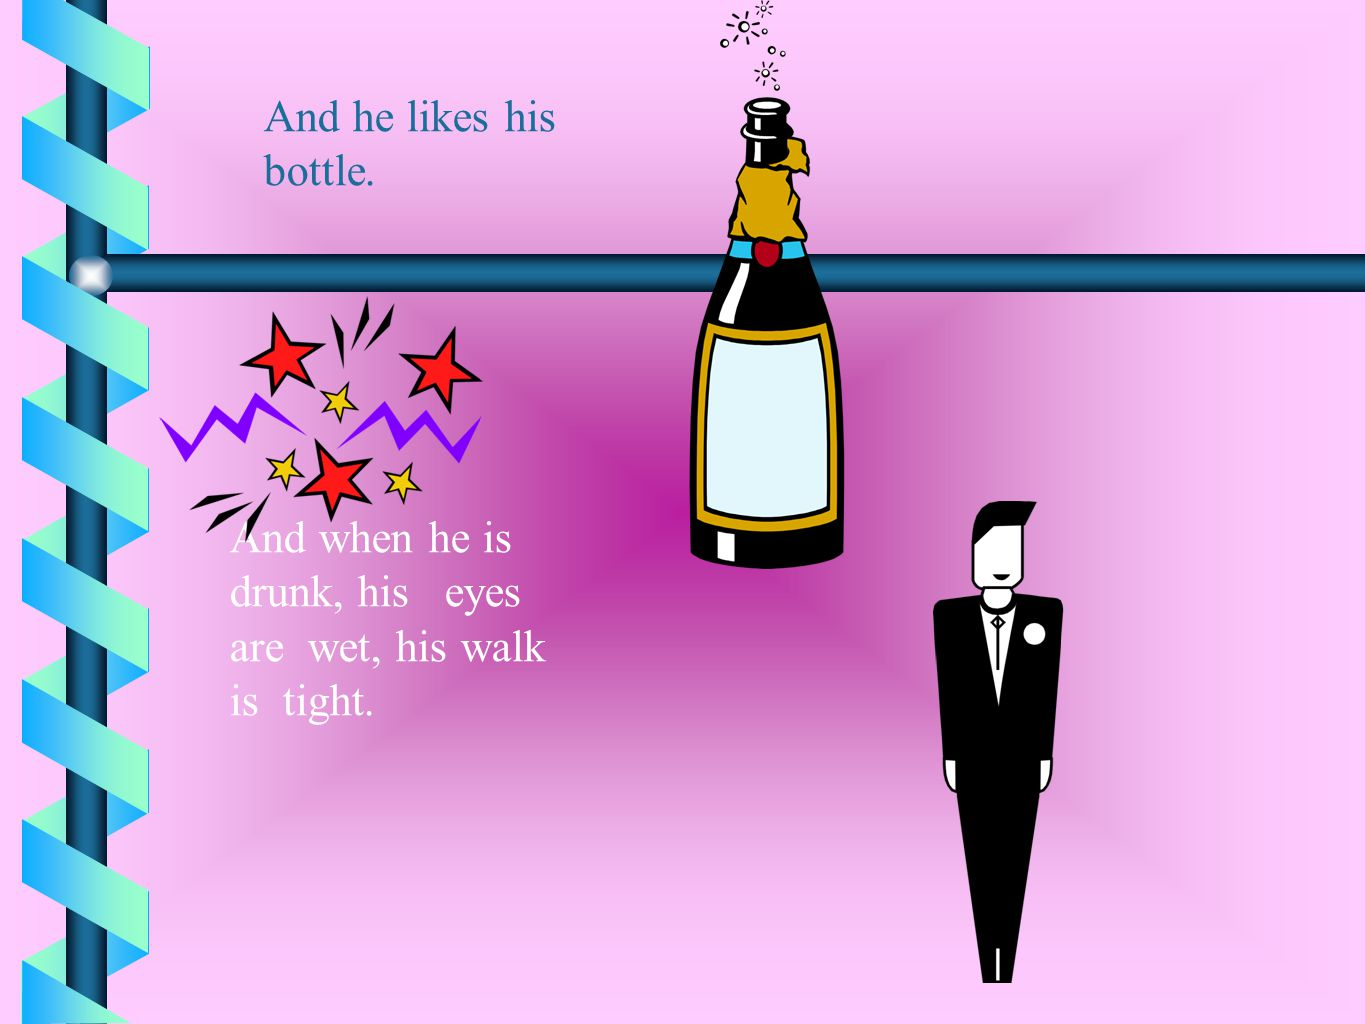 And he likes his bottle. And when he is drunk, his eyes are wet, his walk is tight.